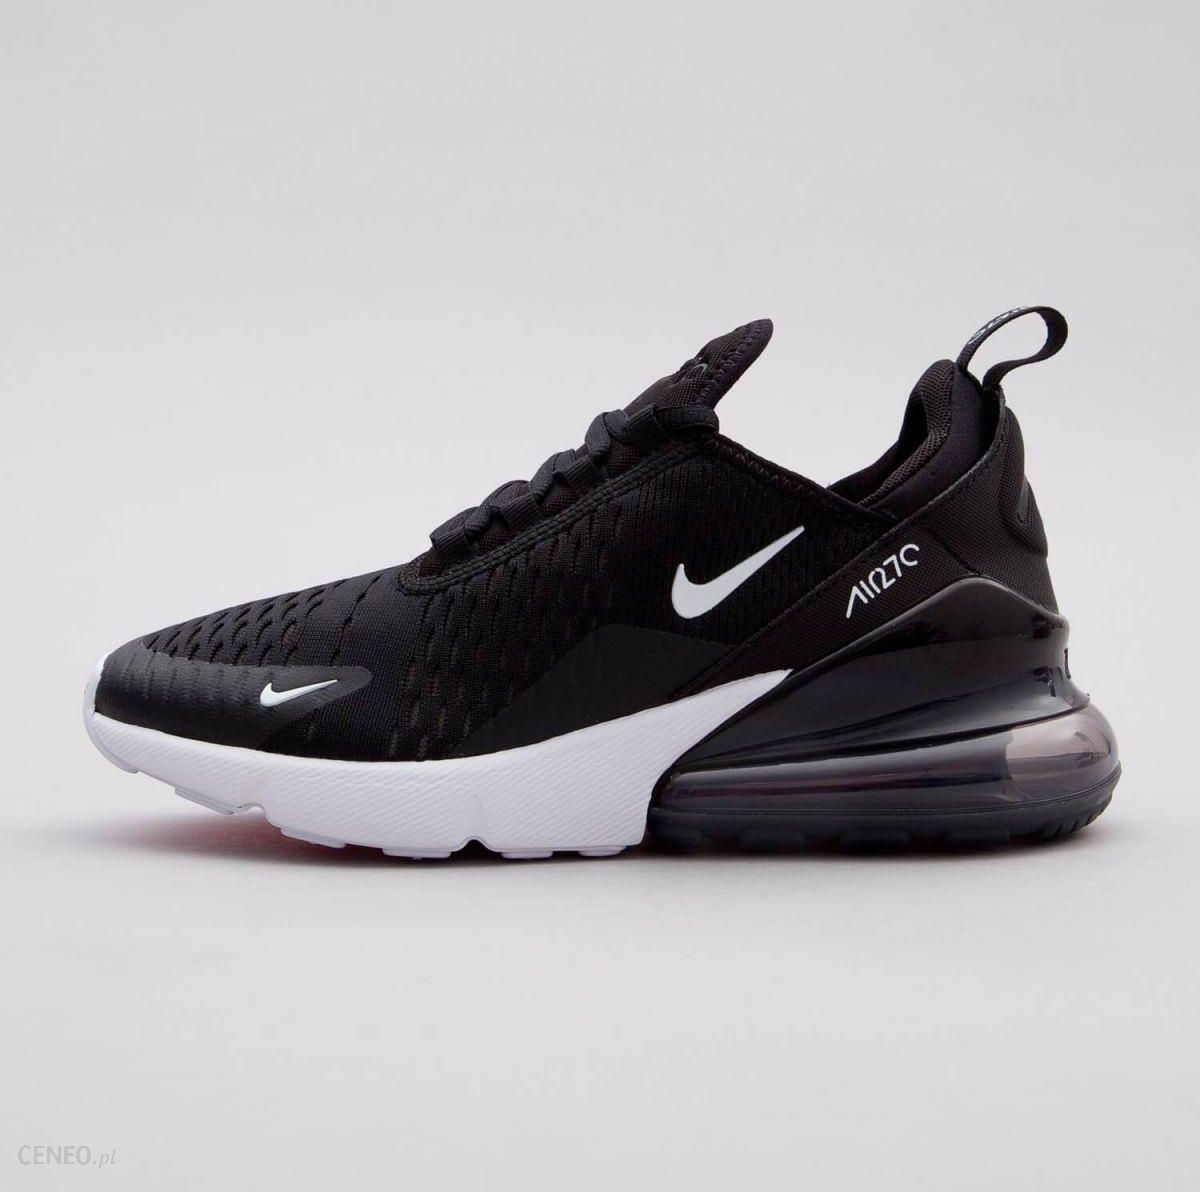 Buty NIKE AIR MAX 270 (GS) 943345 001 Ceny i opinie Ceneo.pl